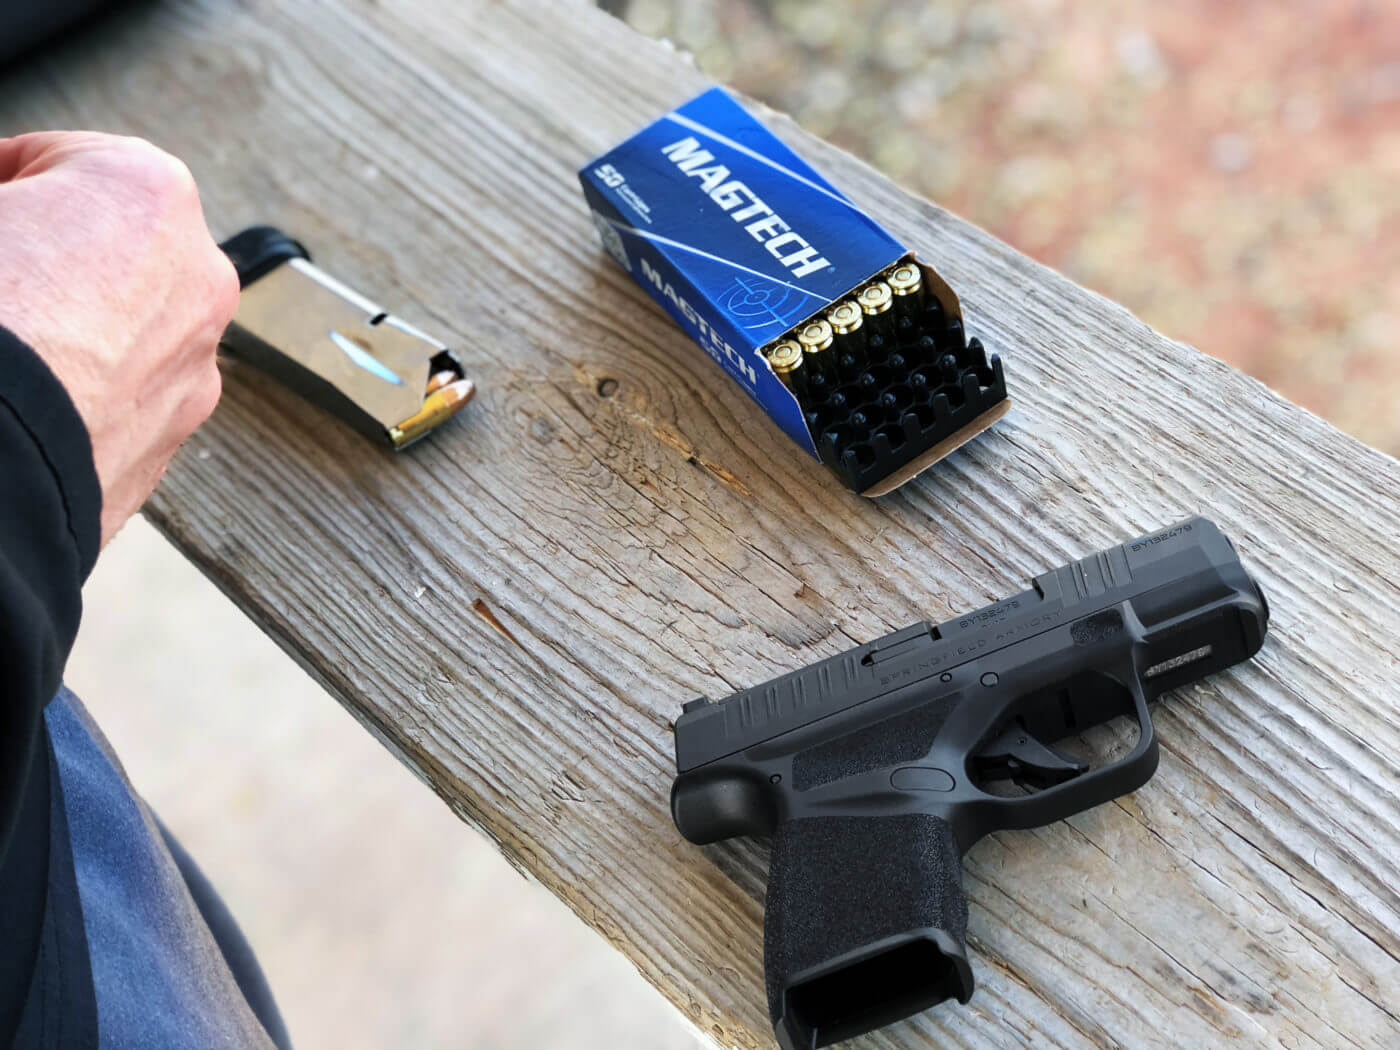 Loading the magazine of the micro compact 9mm Hellcat